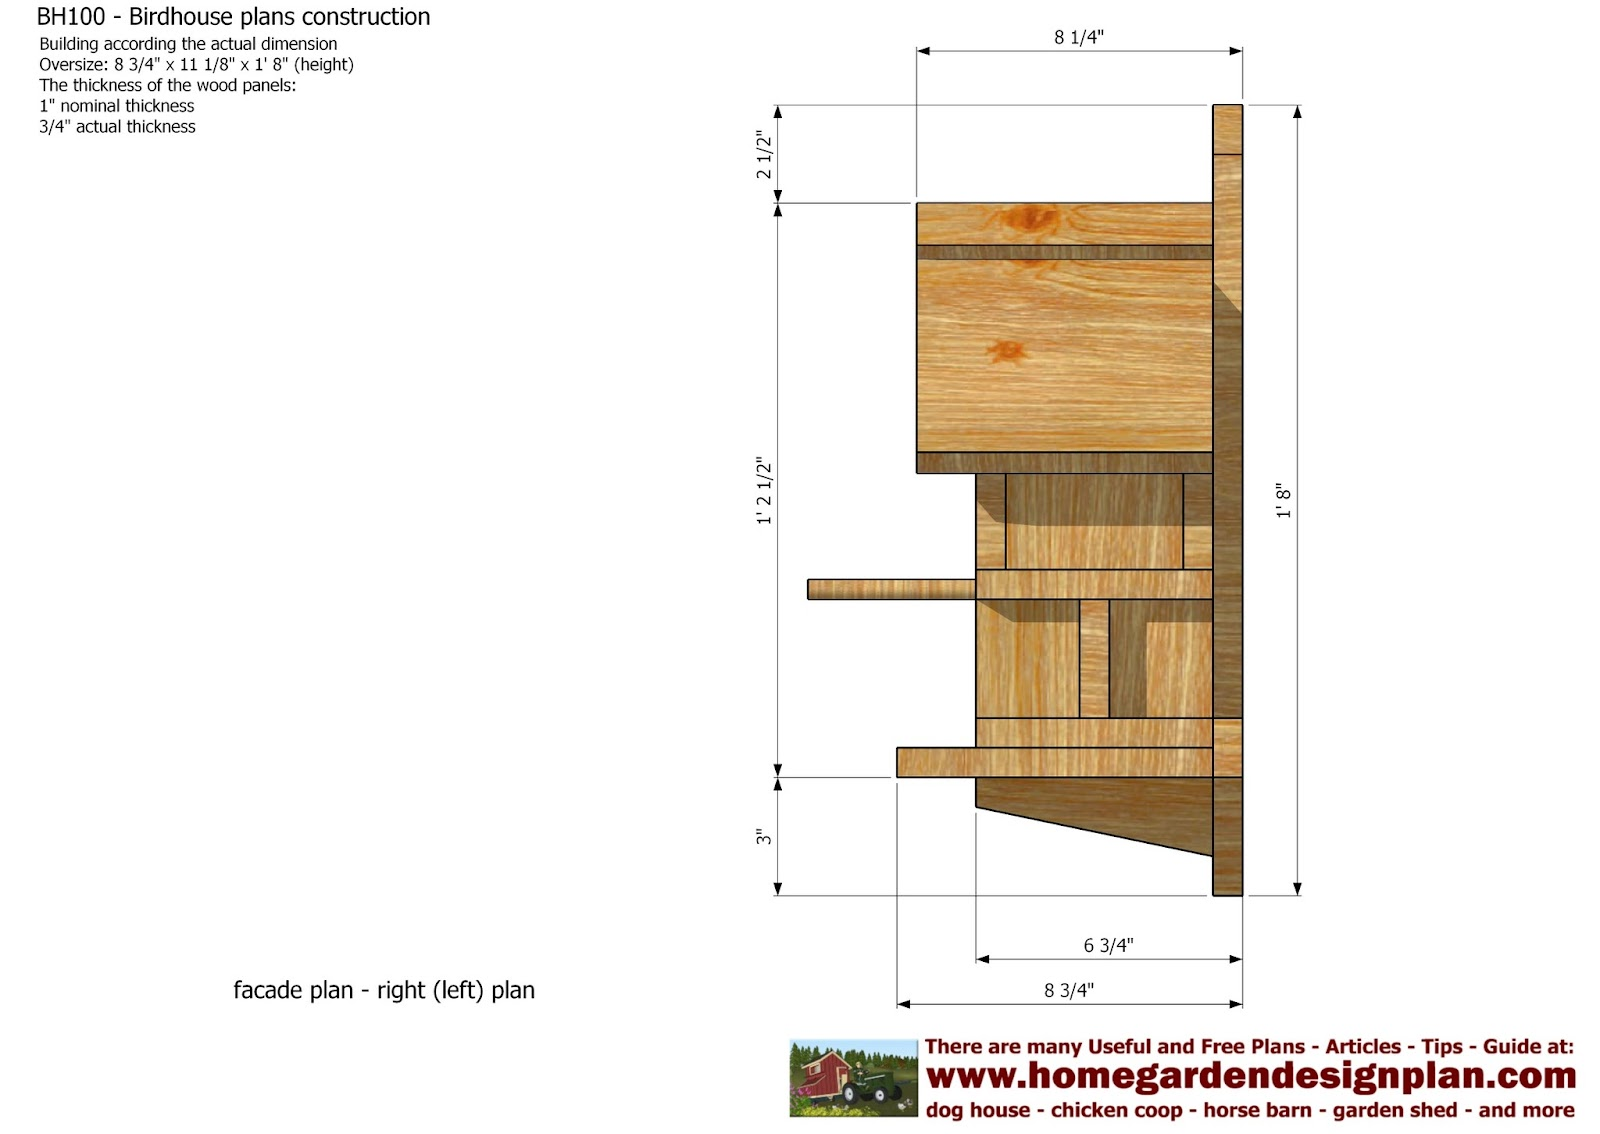 Build a coop blog bh100 bird house plans construction for Building a house blog